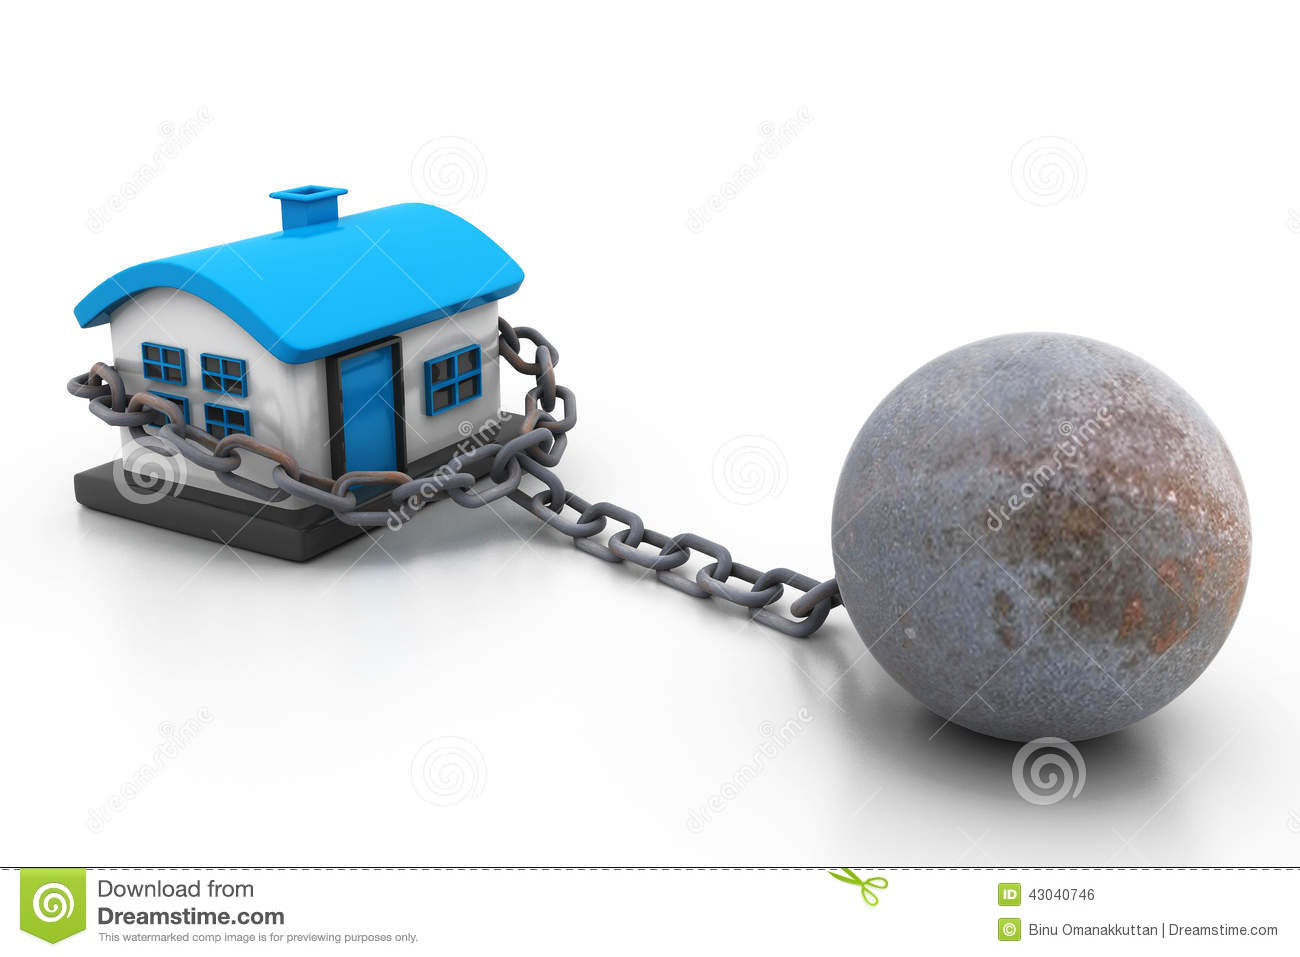 the mortgage crisis and attendant real estate The new mortgage rules amend two existing regulatory regimes: (1) the real estate settlement procedures act (regulation x), and (2) the truth in lending act (regulation z.